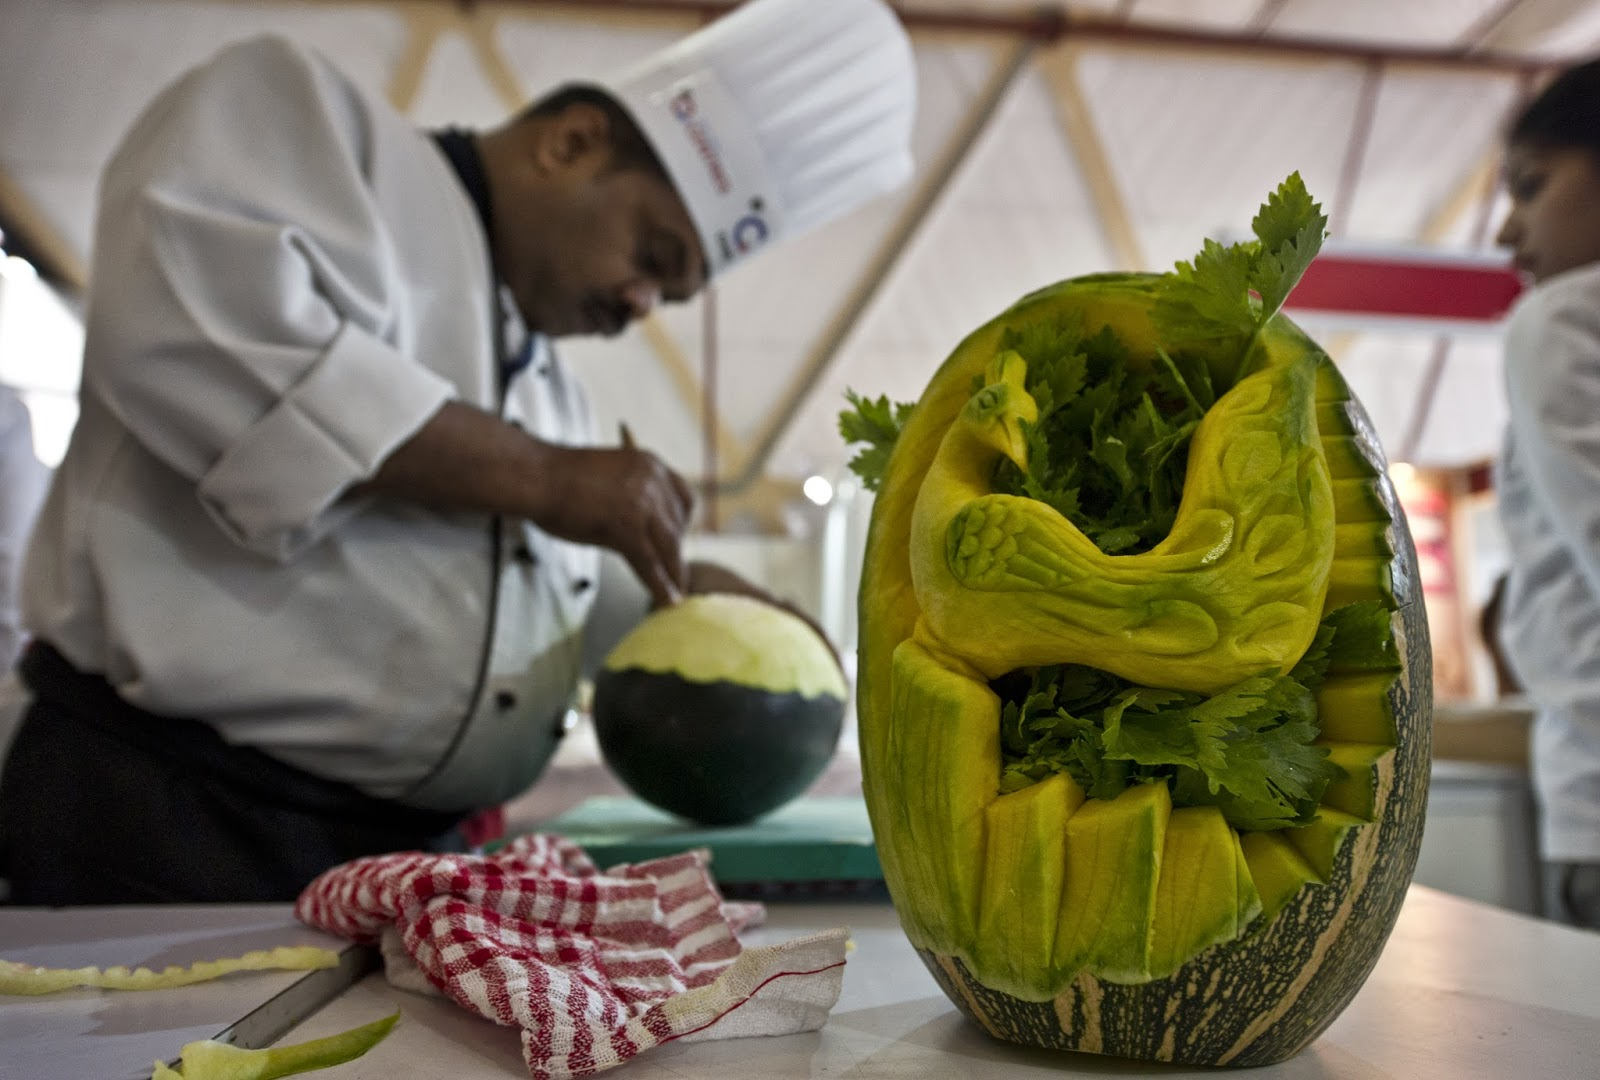 Carving, Chef, Chefs, Competition, Cooking, Creation, Culinary Art India 2014, Exhibition, Fruits, India, New Delhi, News, Offbeat, Pragati Maidan, Vegetables, Watermelon,